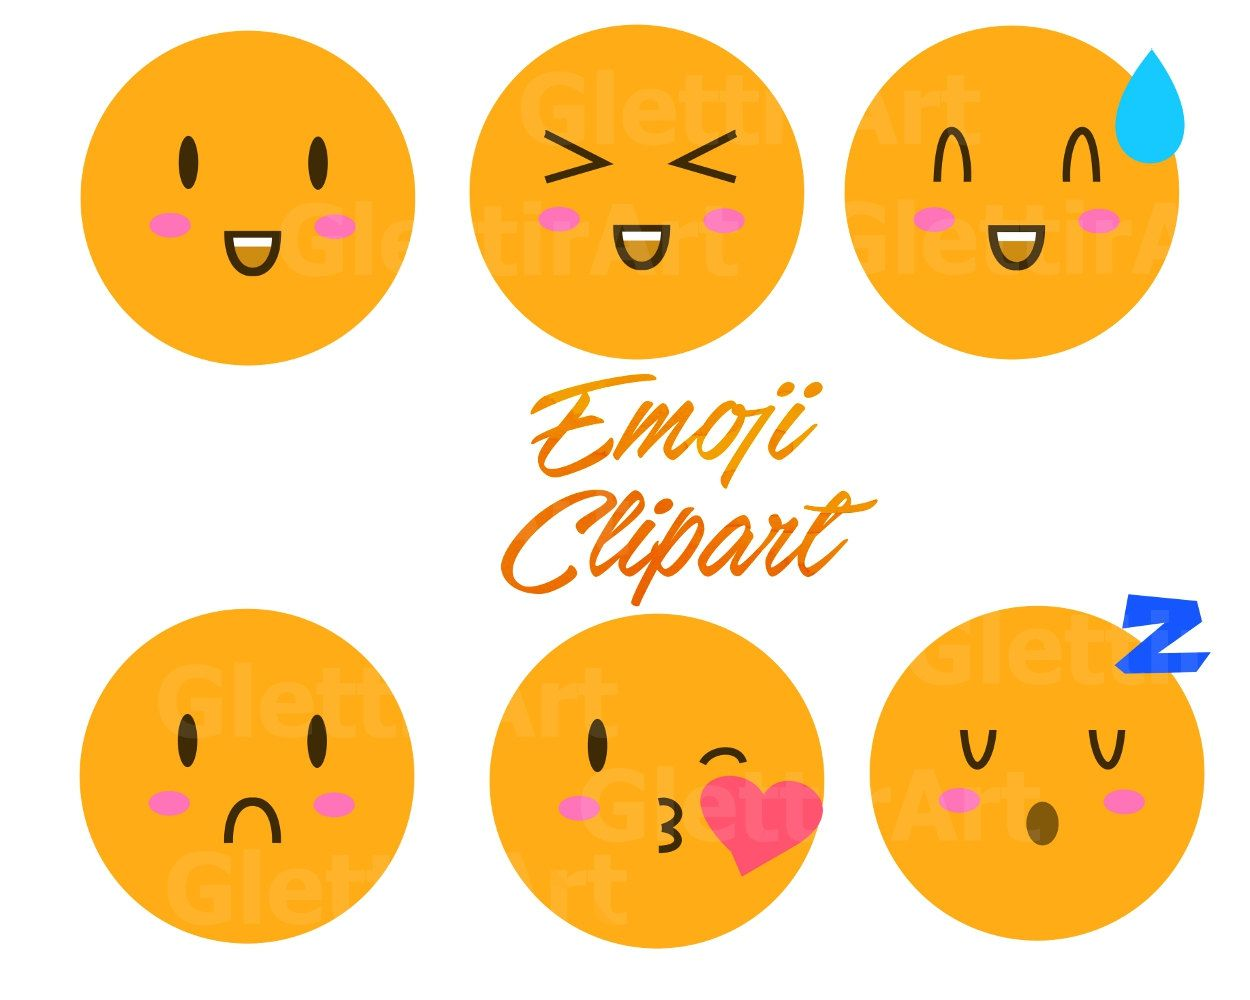 hight resolution of emoji clipart smiley face clipart emoticons clipart for personal and commercial use instant download scrapbooking planner stickers by glettirart on